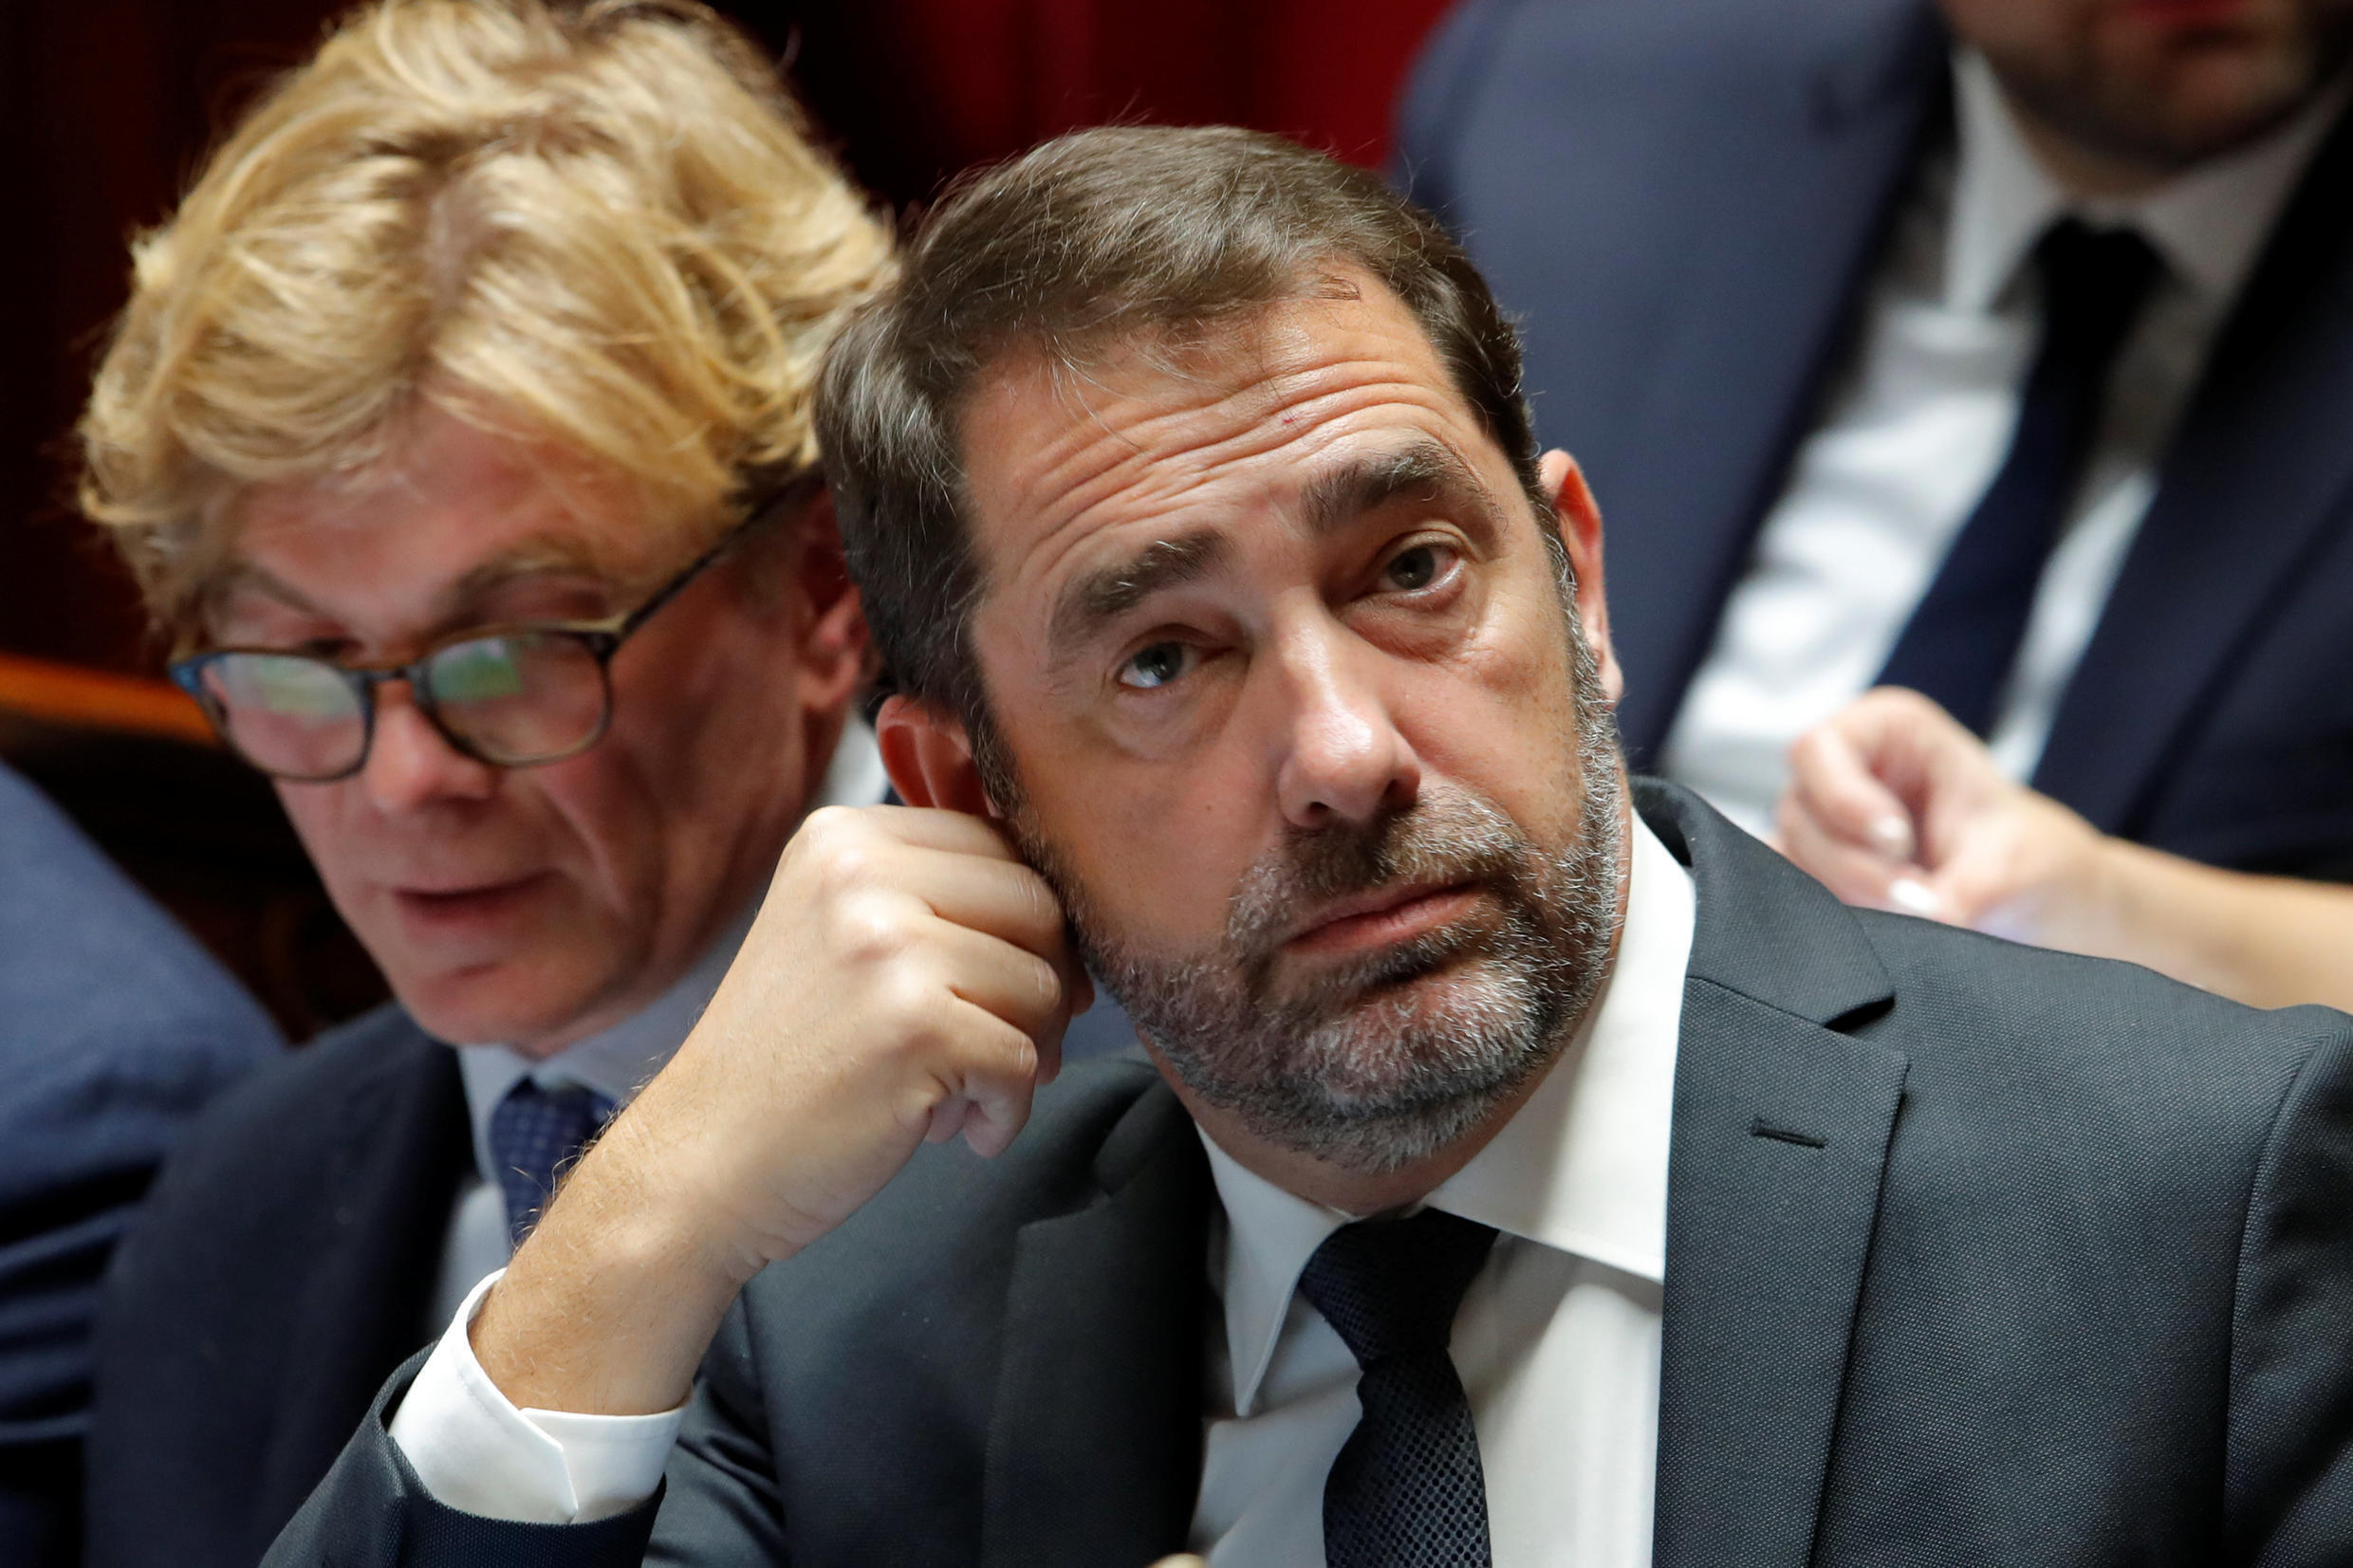 French Interior Minister Christophe Castaner during question time at the National Assembly last month.